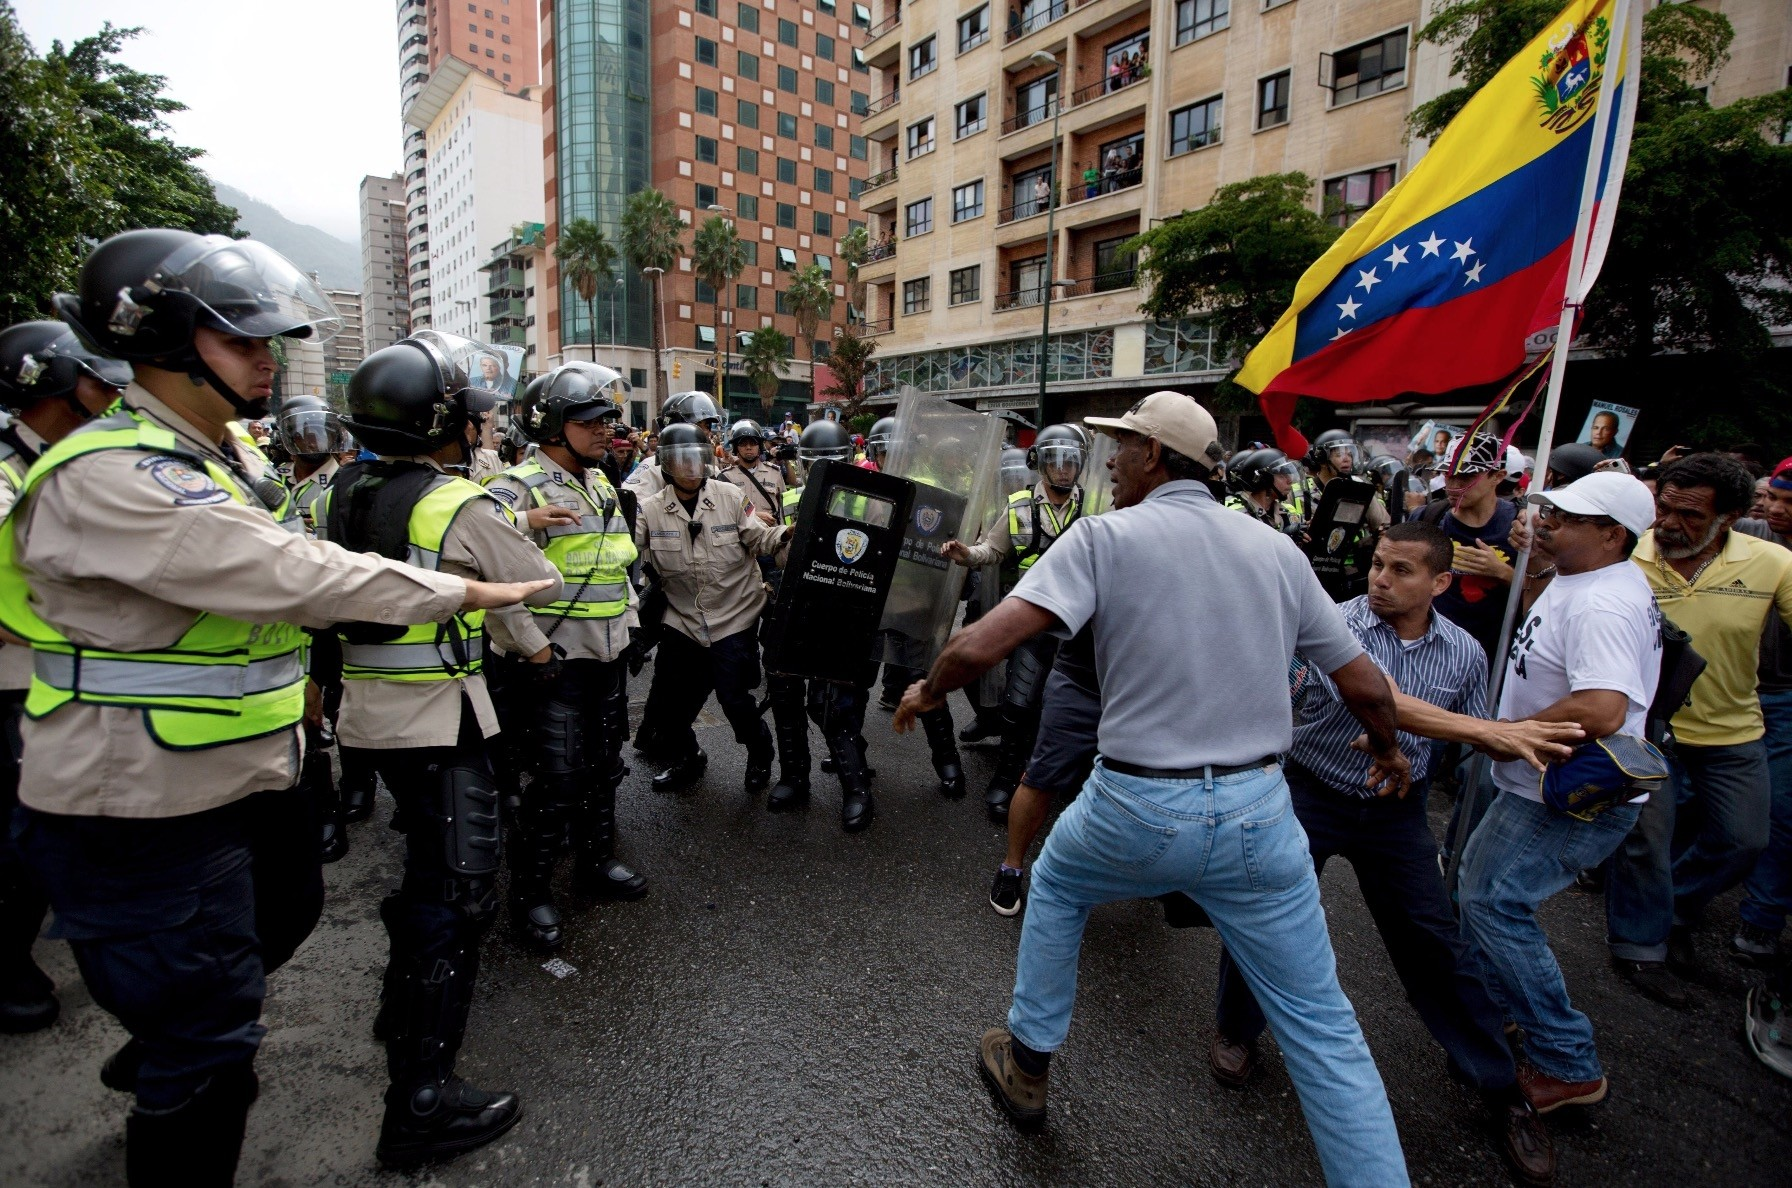 Anti-government demonstrators try to break through a police barrier in an effort to reach the headquarters of the national electoral body in Caracas, May 18, 2019.